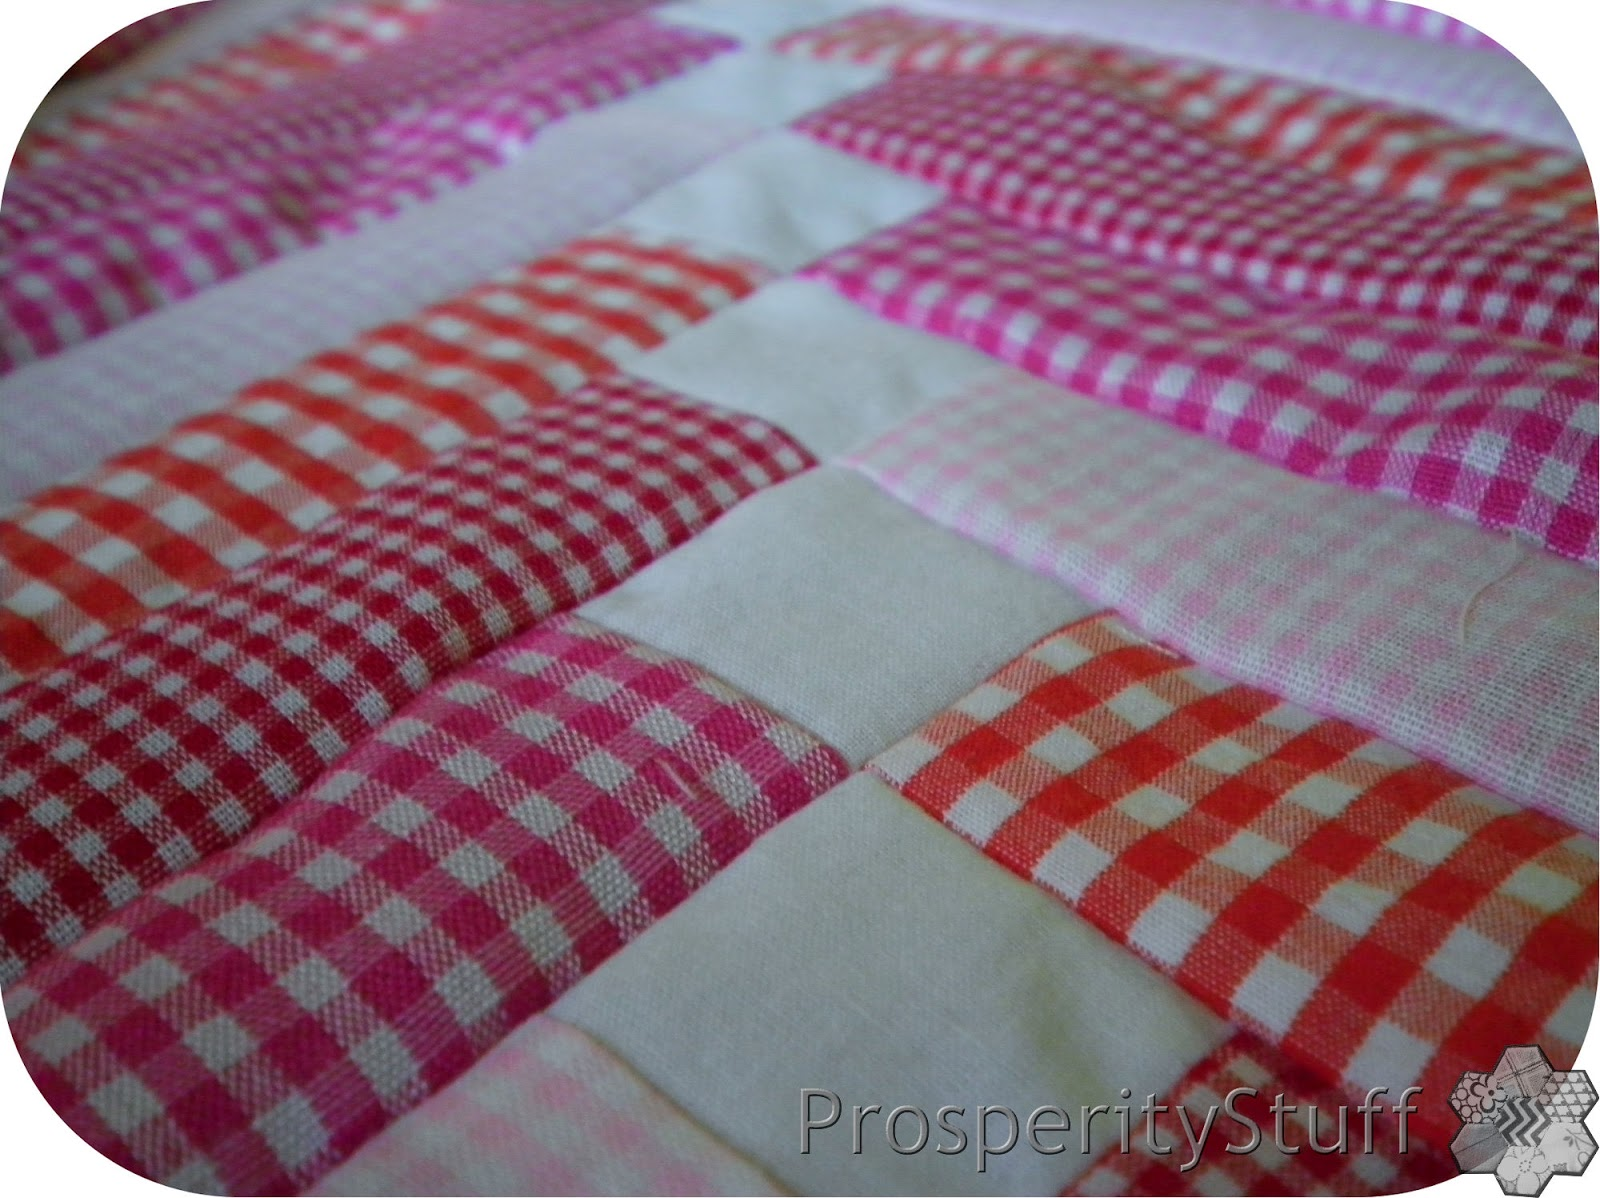 Prosperitystuff Quilts Gingham French Braid Quilt Blocks